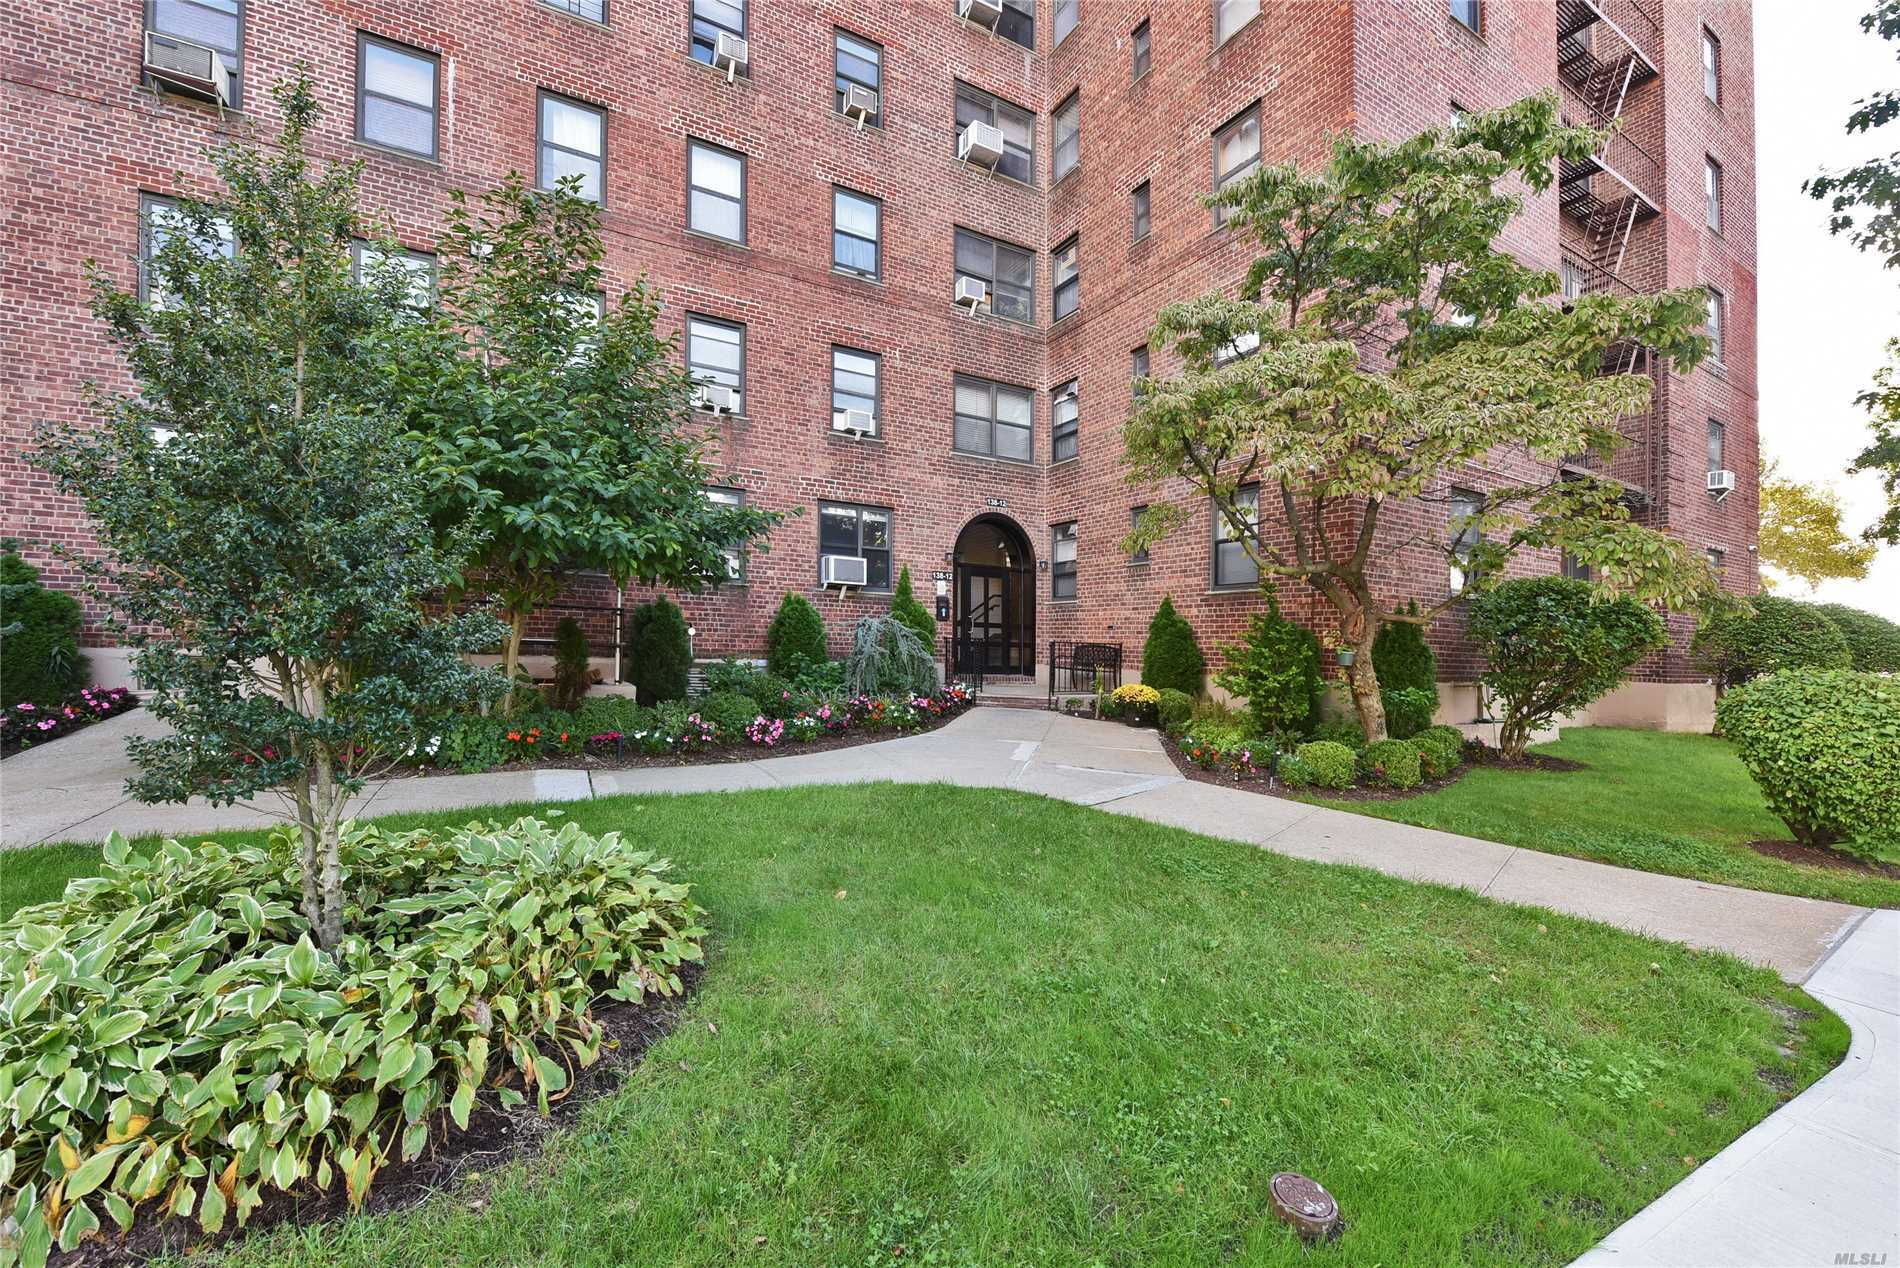 Large Two Bedroom Coop Corner Unit, High Floor With Overview Of White Stone Bridge, Hardwood Flooring Throughout, Dual Windows In Both Bedroom, Renovated Kitchen And Bathroom , Lot Of Closets, Formal Dinning Room, Low Maintenance Cover All Utilities, Laundry Room In The Building, Parking Space Is Available Almost Immidiately,  Nice Well Maintain Building With Updated New Elevator, Close To Major High Ways, Multi Line Of Bus, Shopping Center, Supermarket, Schools, Library, Post Office, Must See